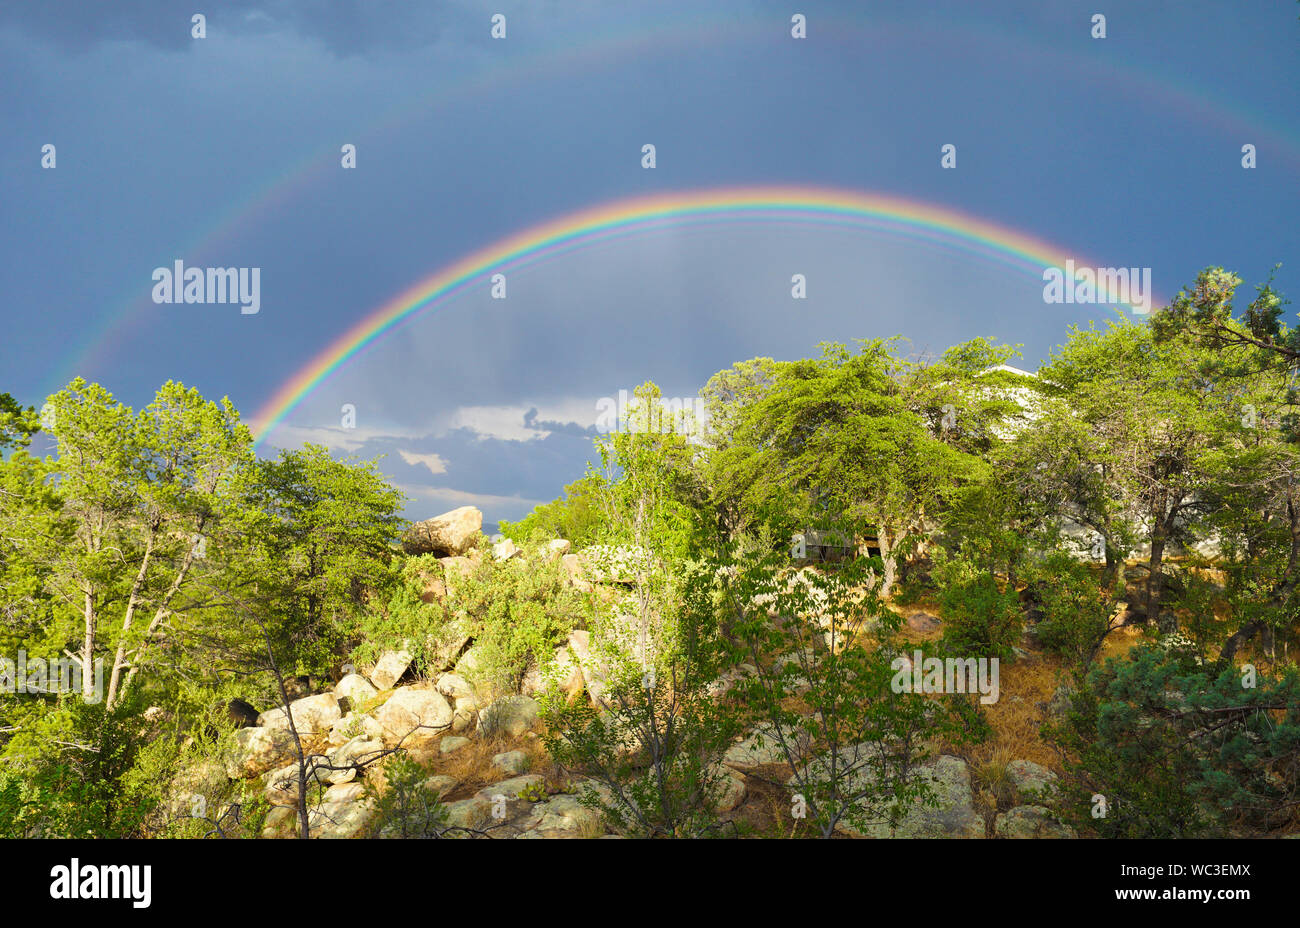 A Double rainbow shines brightly over the high desert landscape. Stock Photo